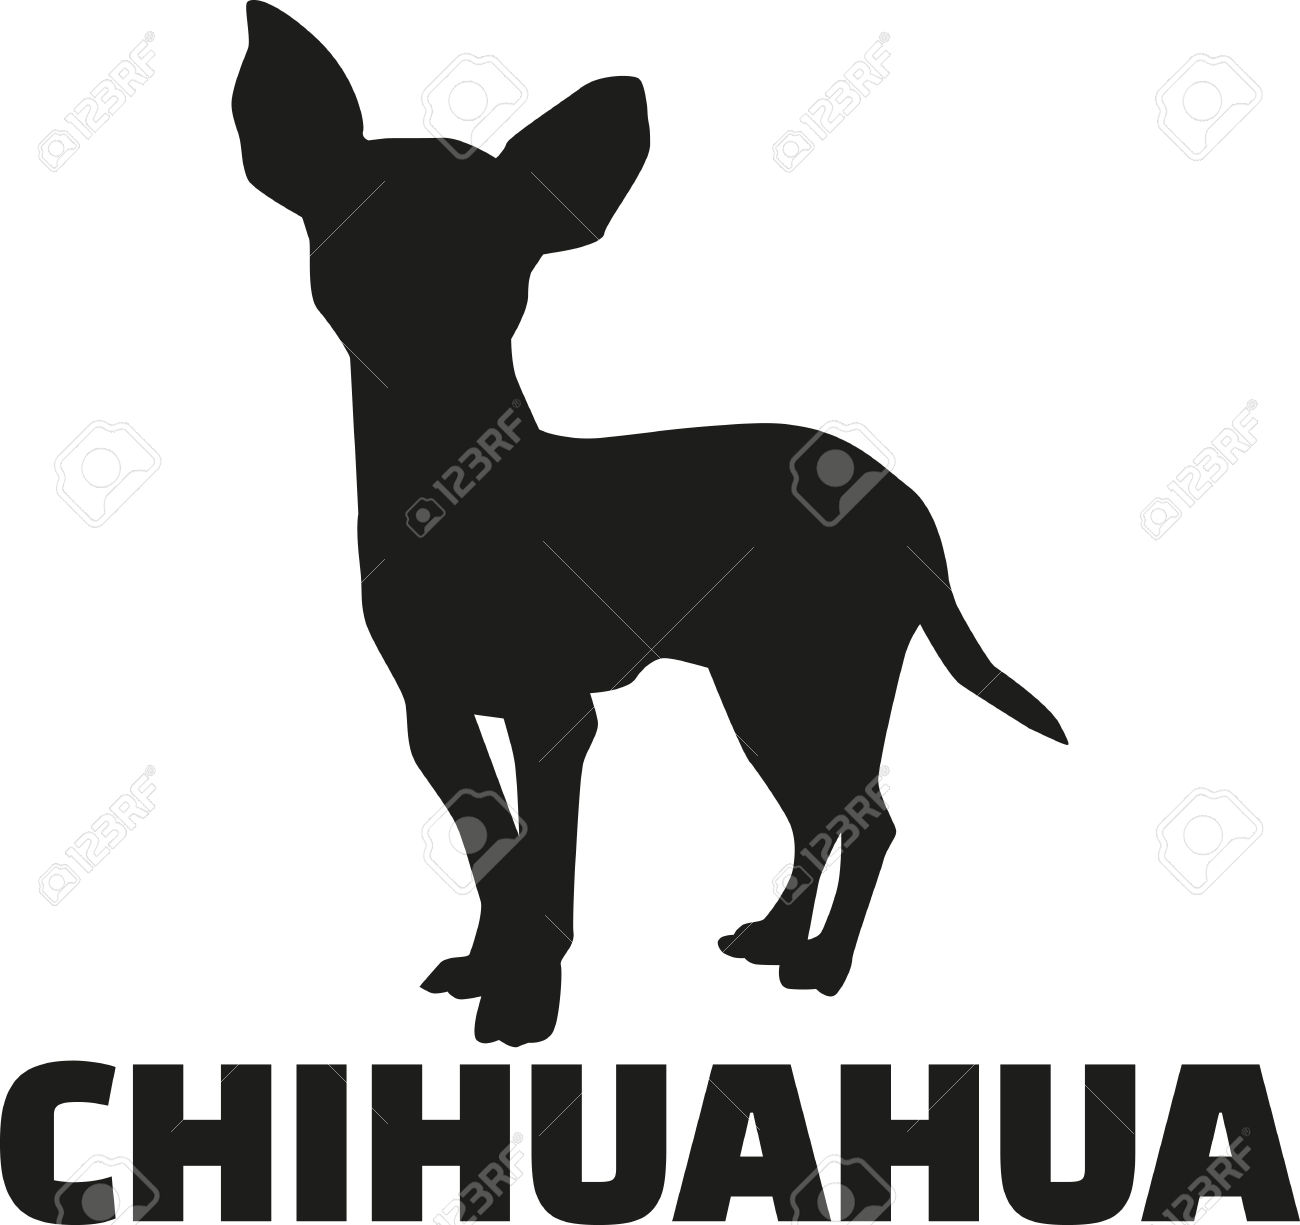 Chihuahua Silhouette With Breed Name Royalty Free Cliparts.